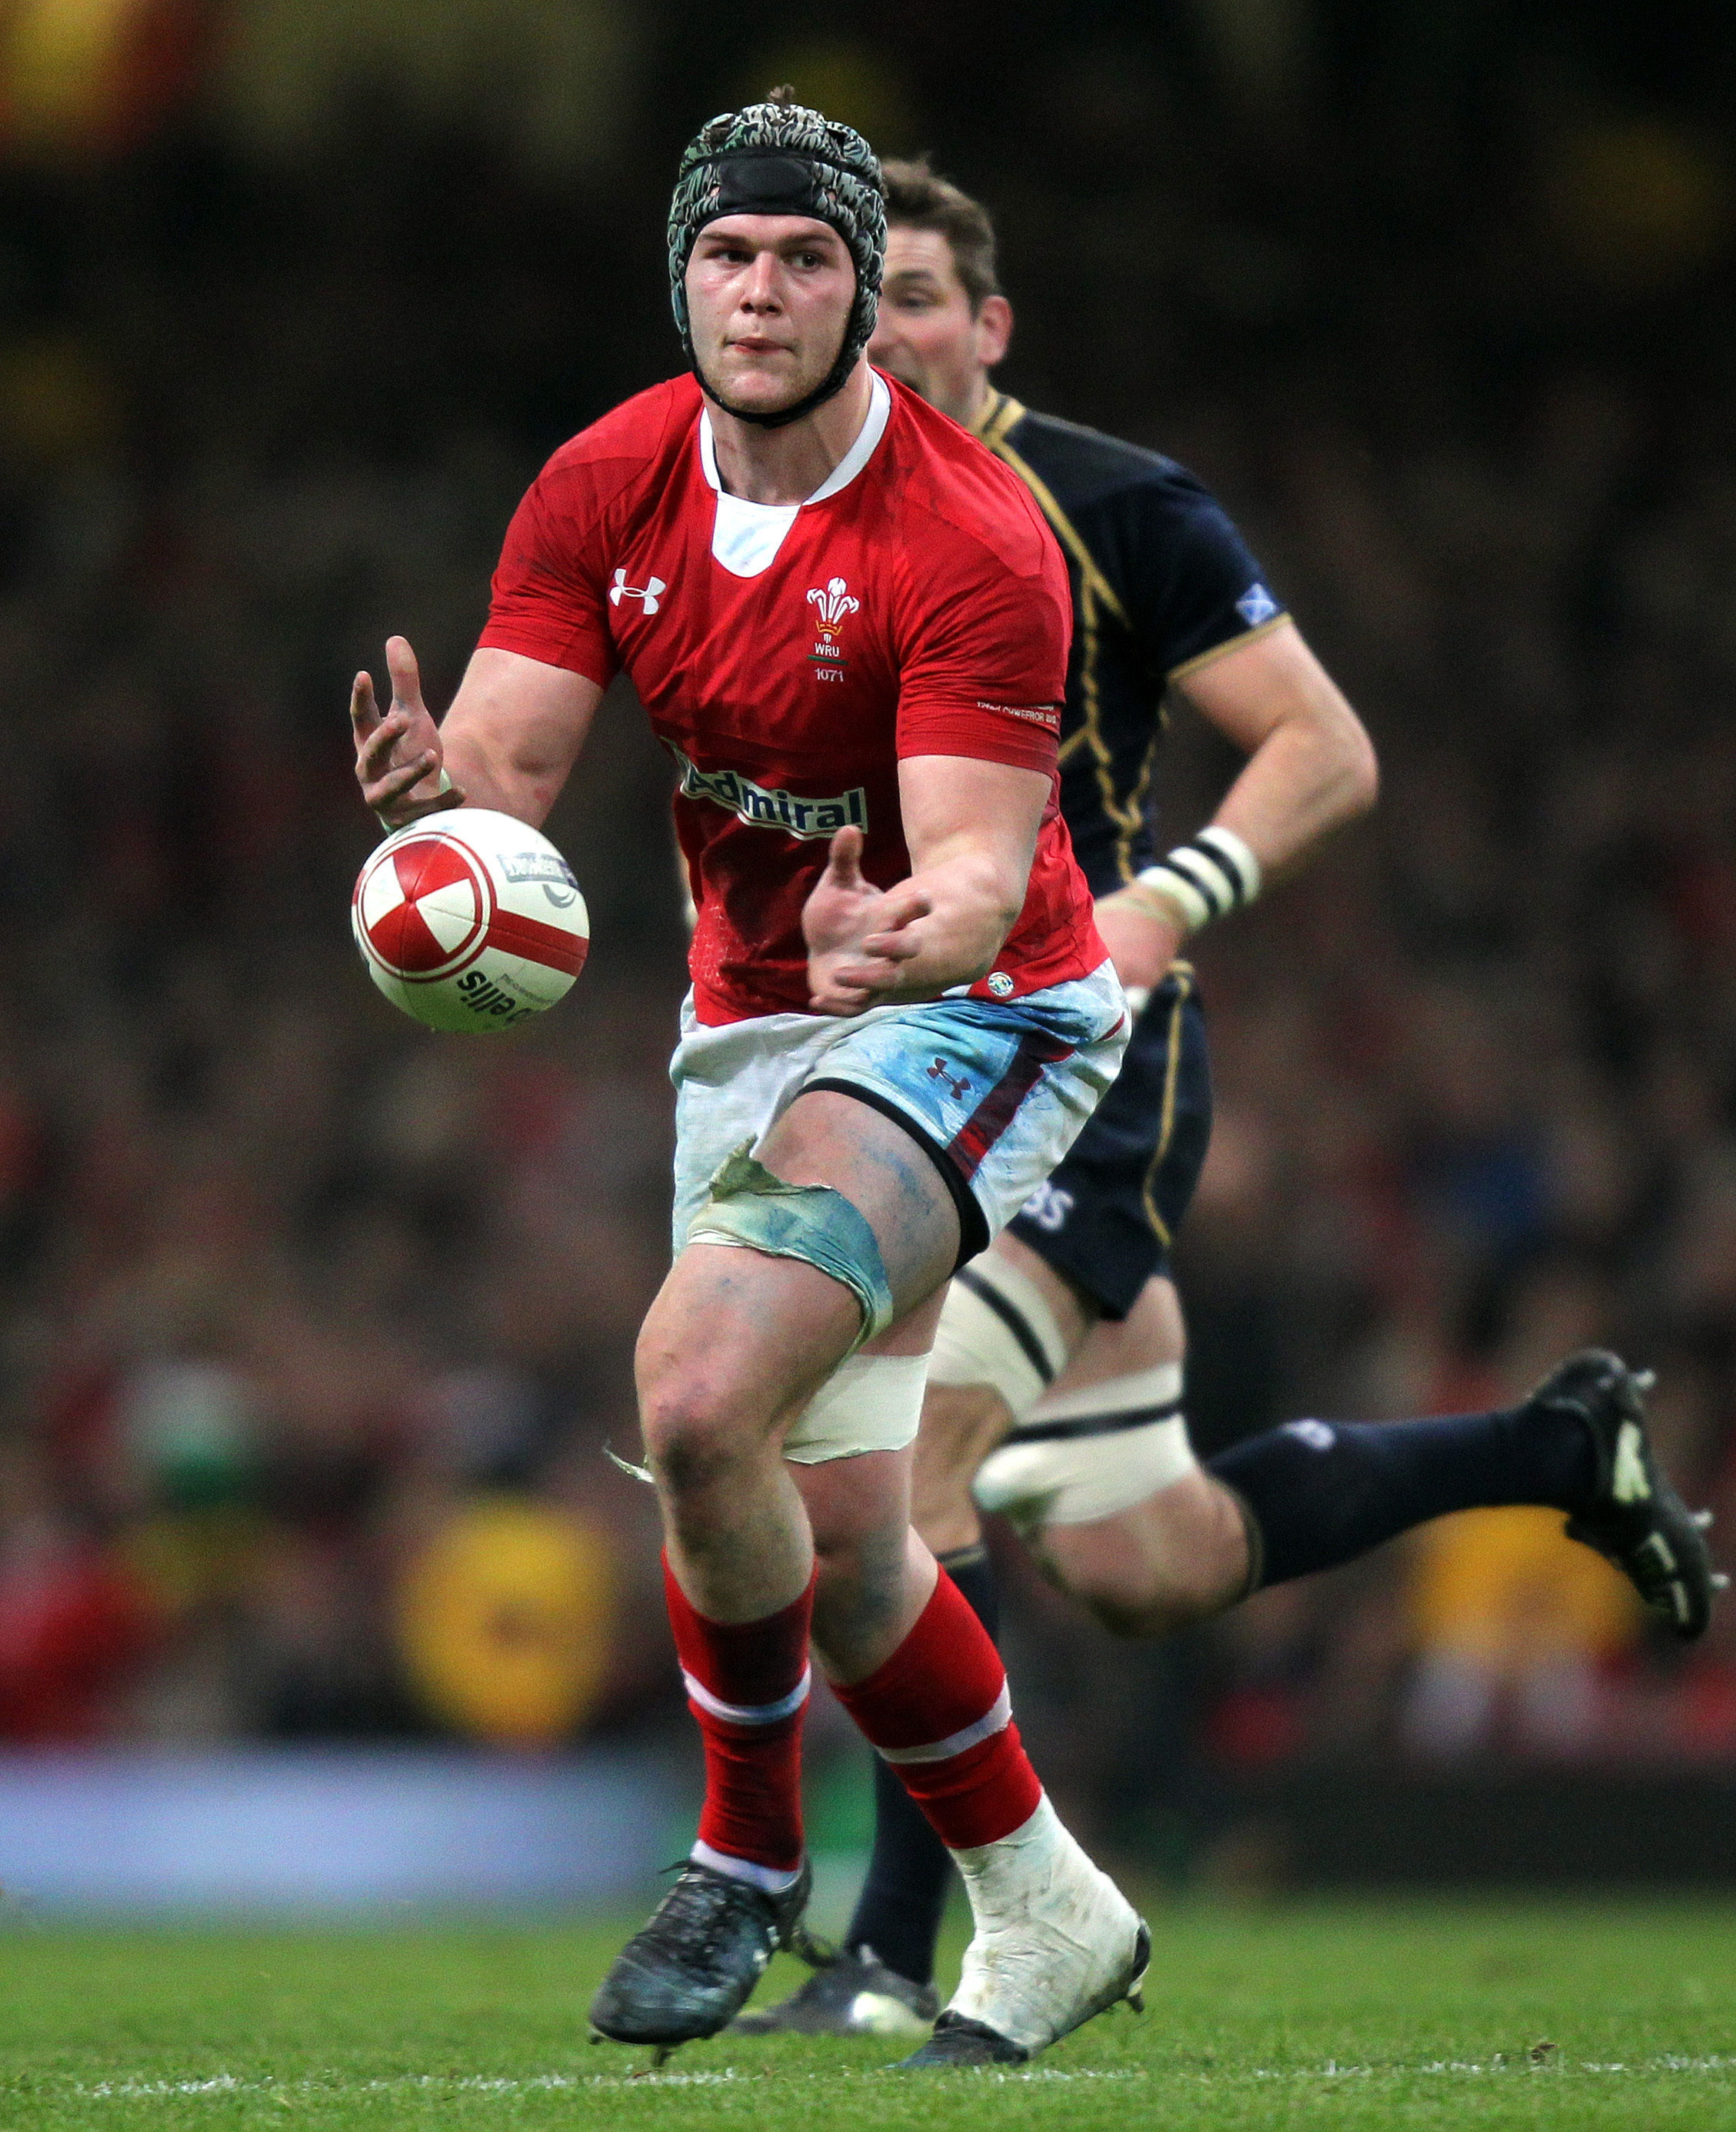 File photo dated 12/02/2012 of Dan Lydiate. PRESS ASSOCIATION Photo. Issue date: Tuesday April 30, 2013. Dan Lydiate has been named in the British and Irish Lions squad for the tour of Hong Kong and Australia, head coach Warren Gatland has announced. See